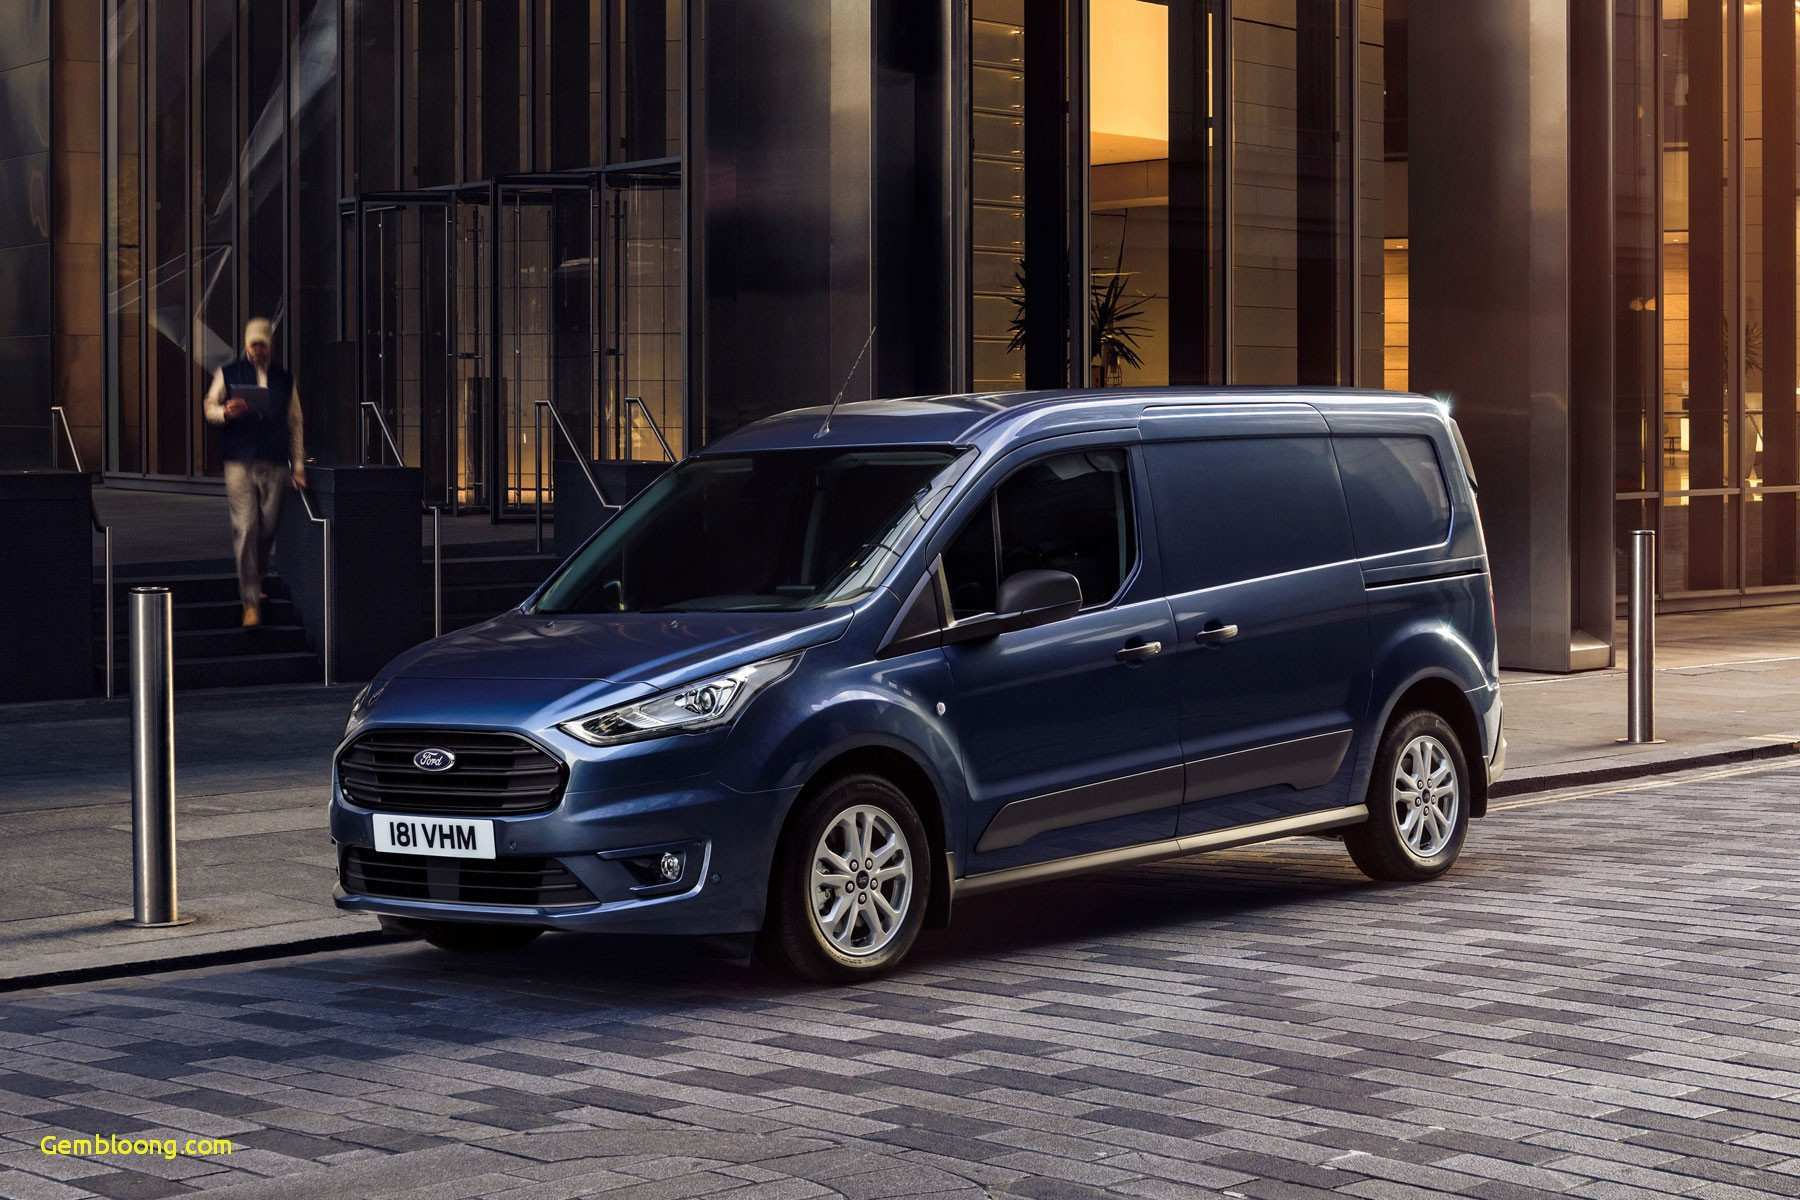 65 All New Ford Transit 2020 Release Date Research New